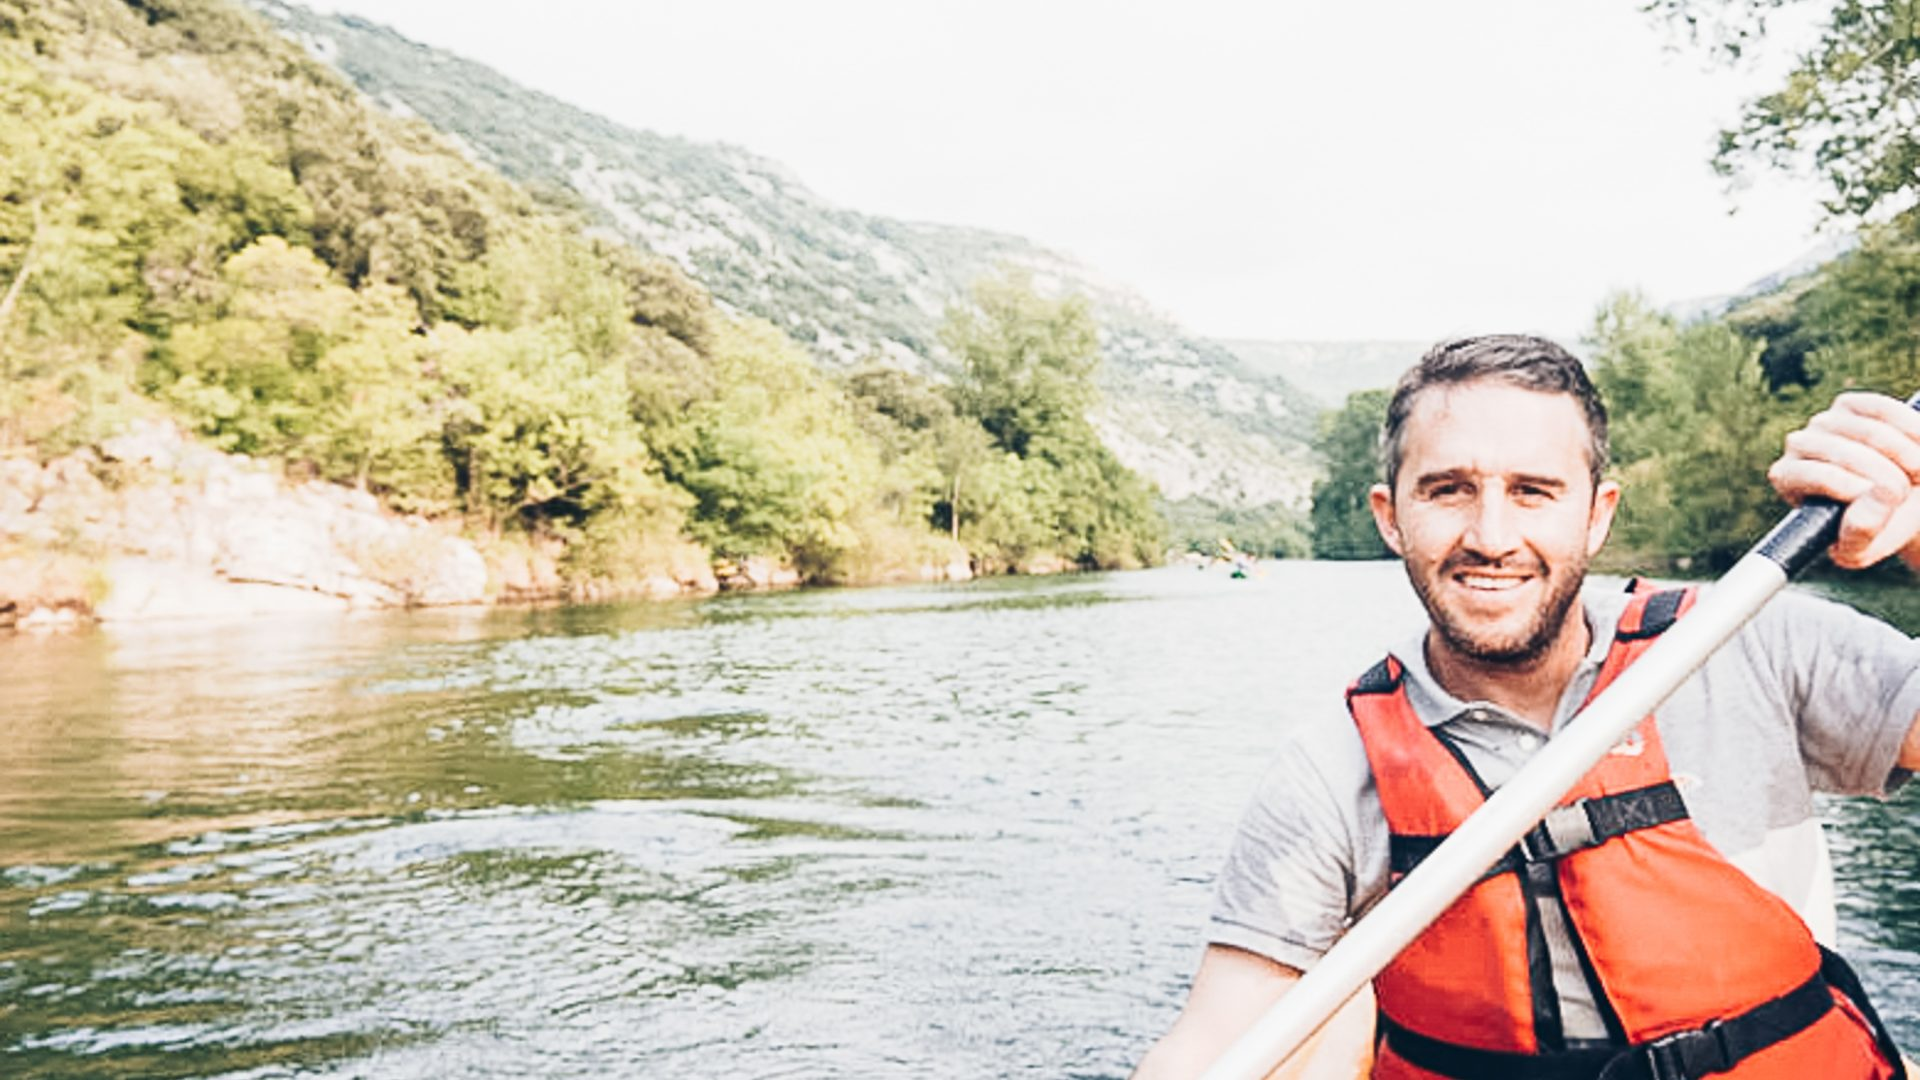 Max's face is visible as he kayaks down the river in Vallée de l'Hérault: kayaking in France